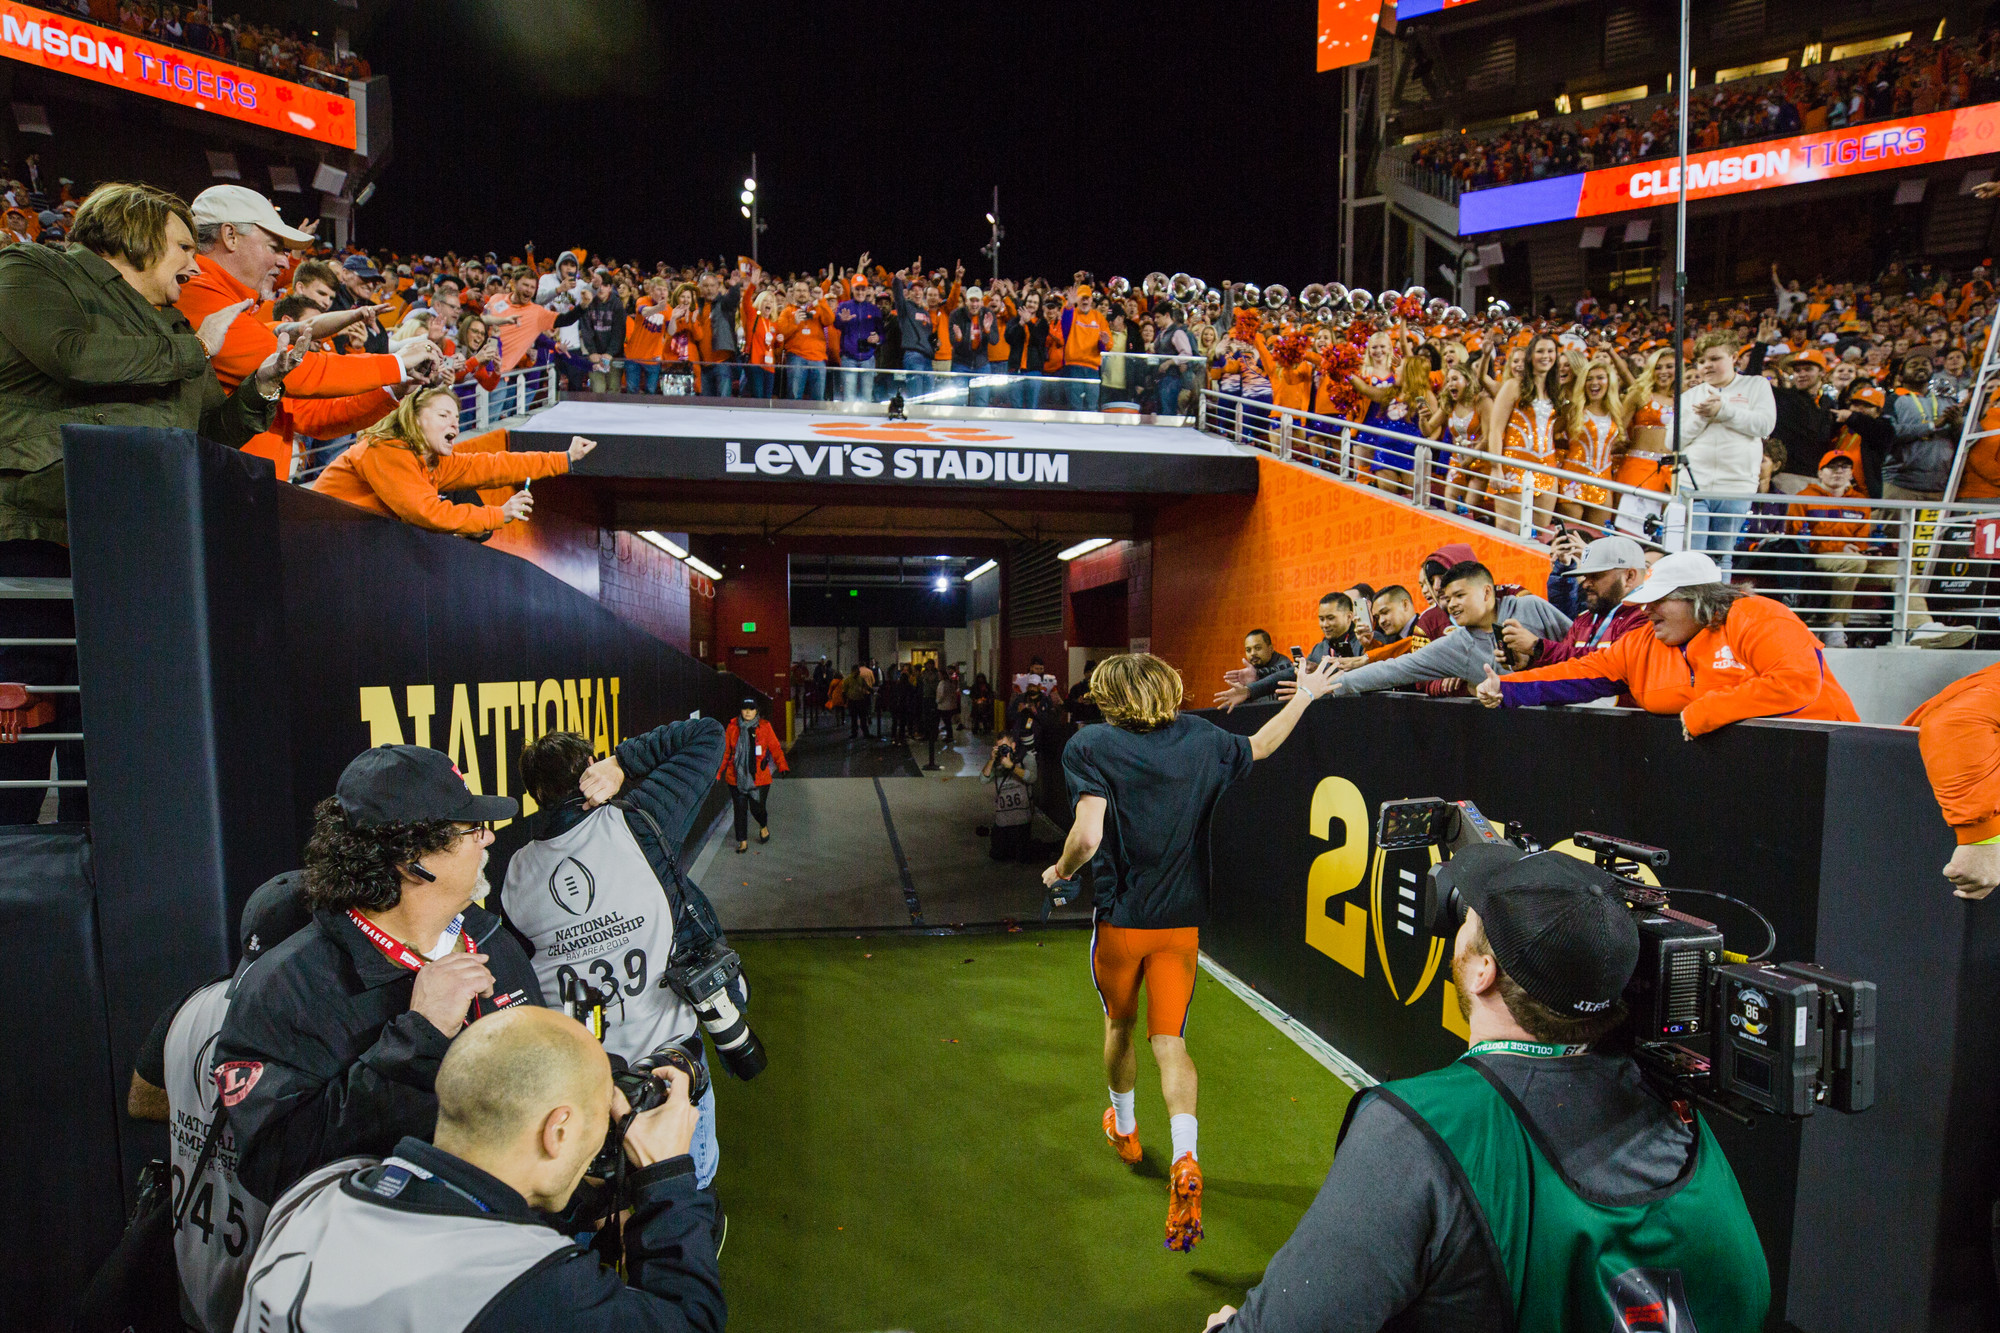 Clemson quarterback Trevor Lawrence exits Levi's Stadium in Santa Clara, California, on Monday, Jan. 7 after the Tigers routed Alabama 44-16 to win the 2019 CFP National Championship.